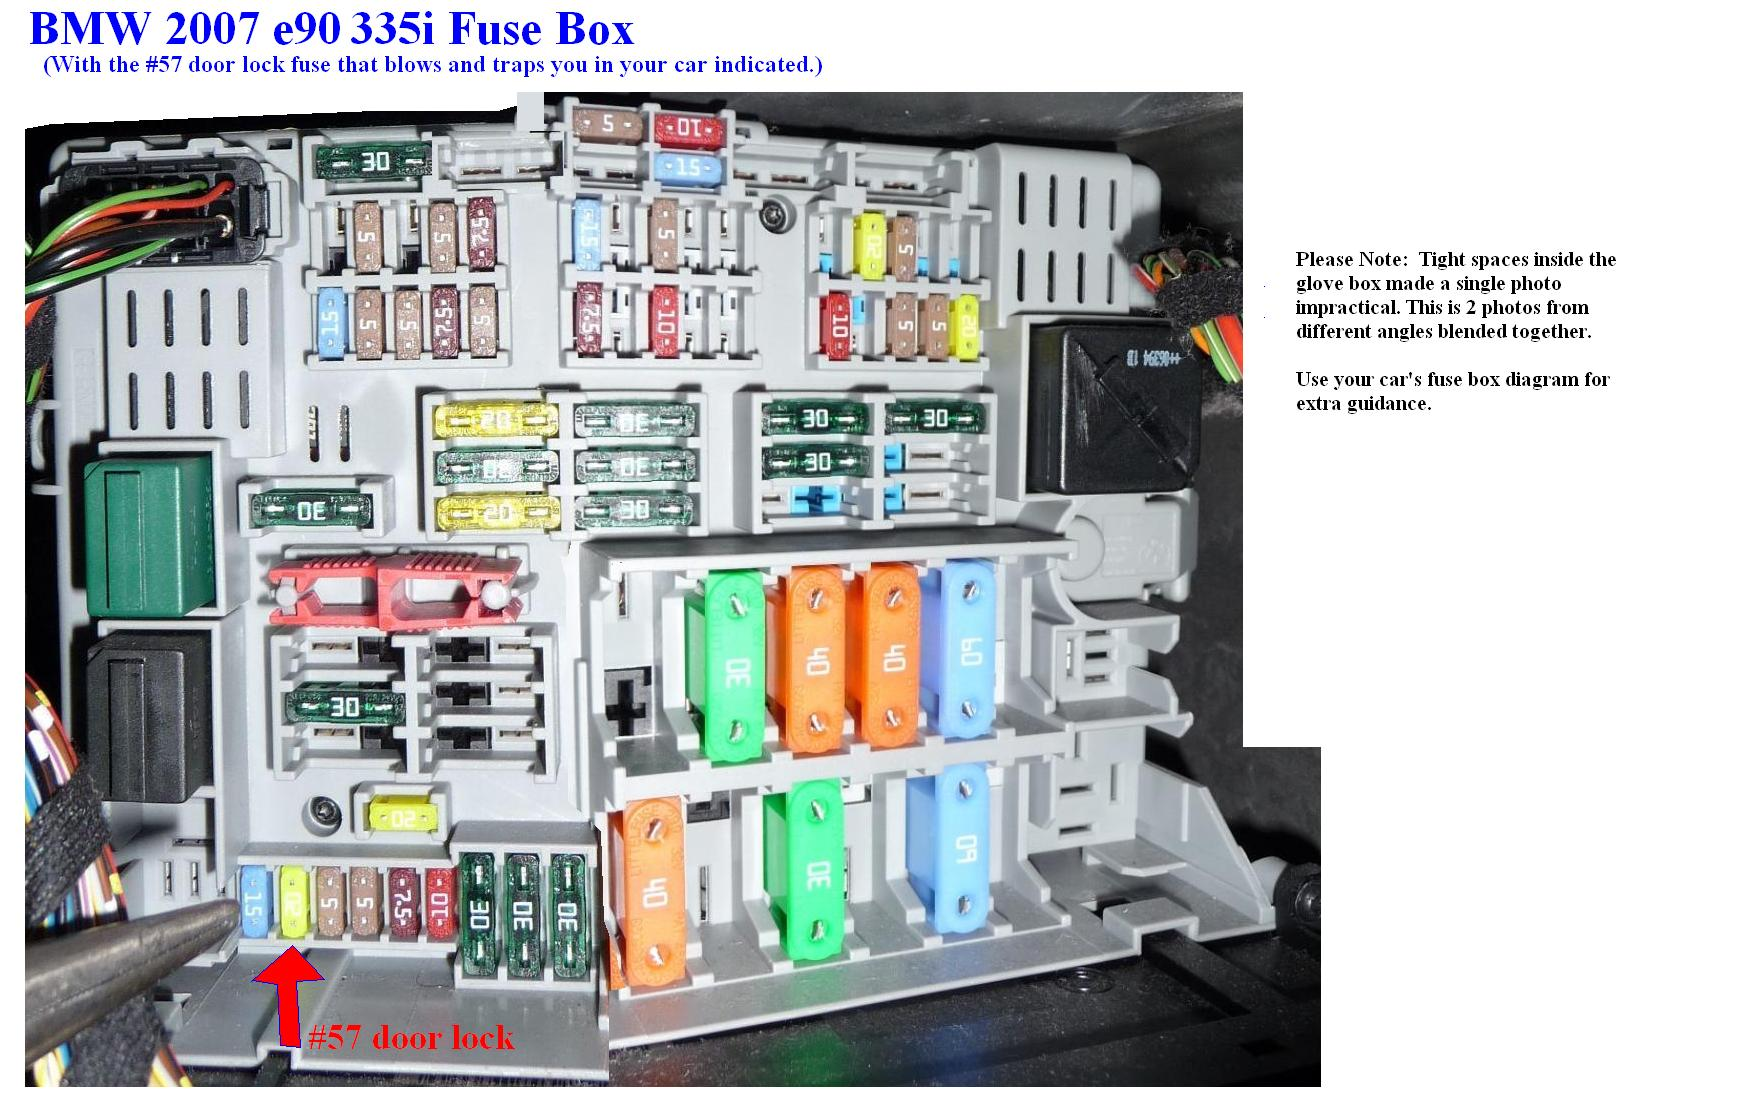 2006 Bmw 325i Fuse Box Layout Diagram 30 Wiring Images E90fuses 57 Door Locks Not Working Fuses Bimmerfest Forums At